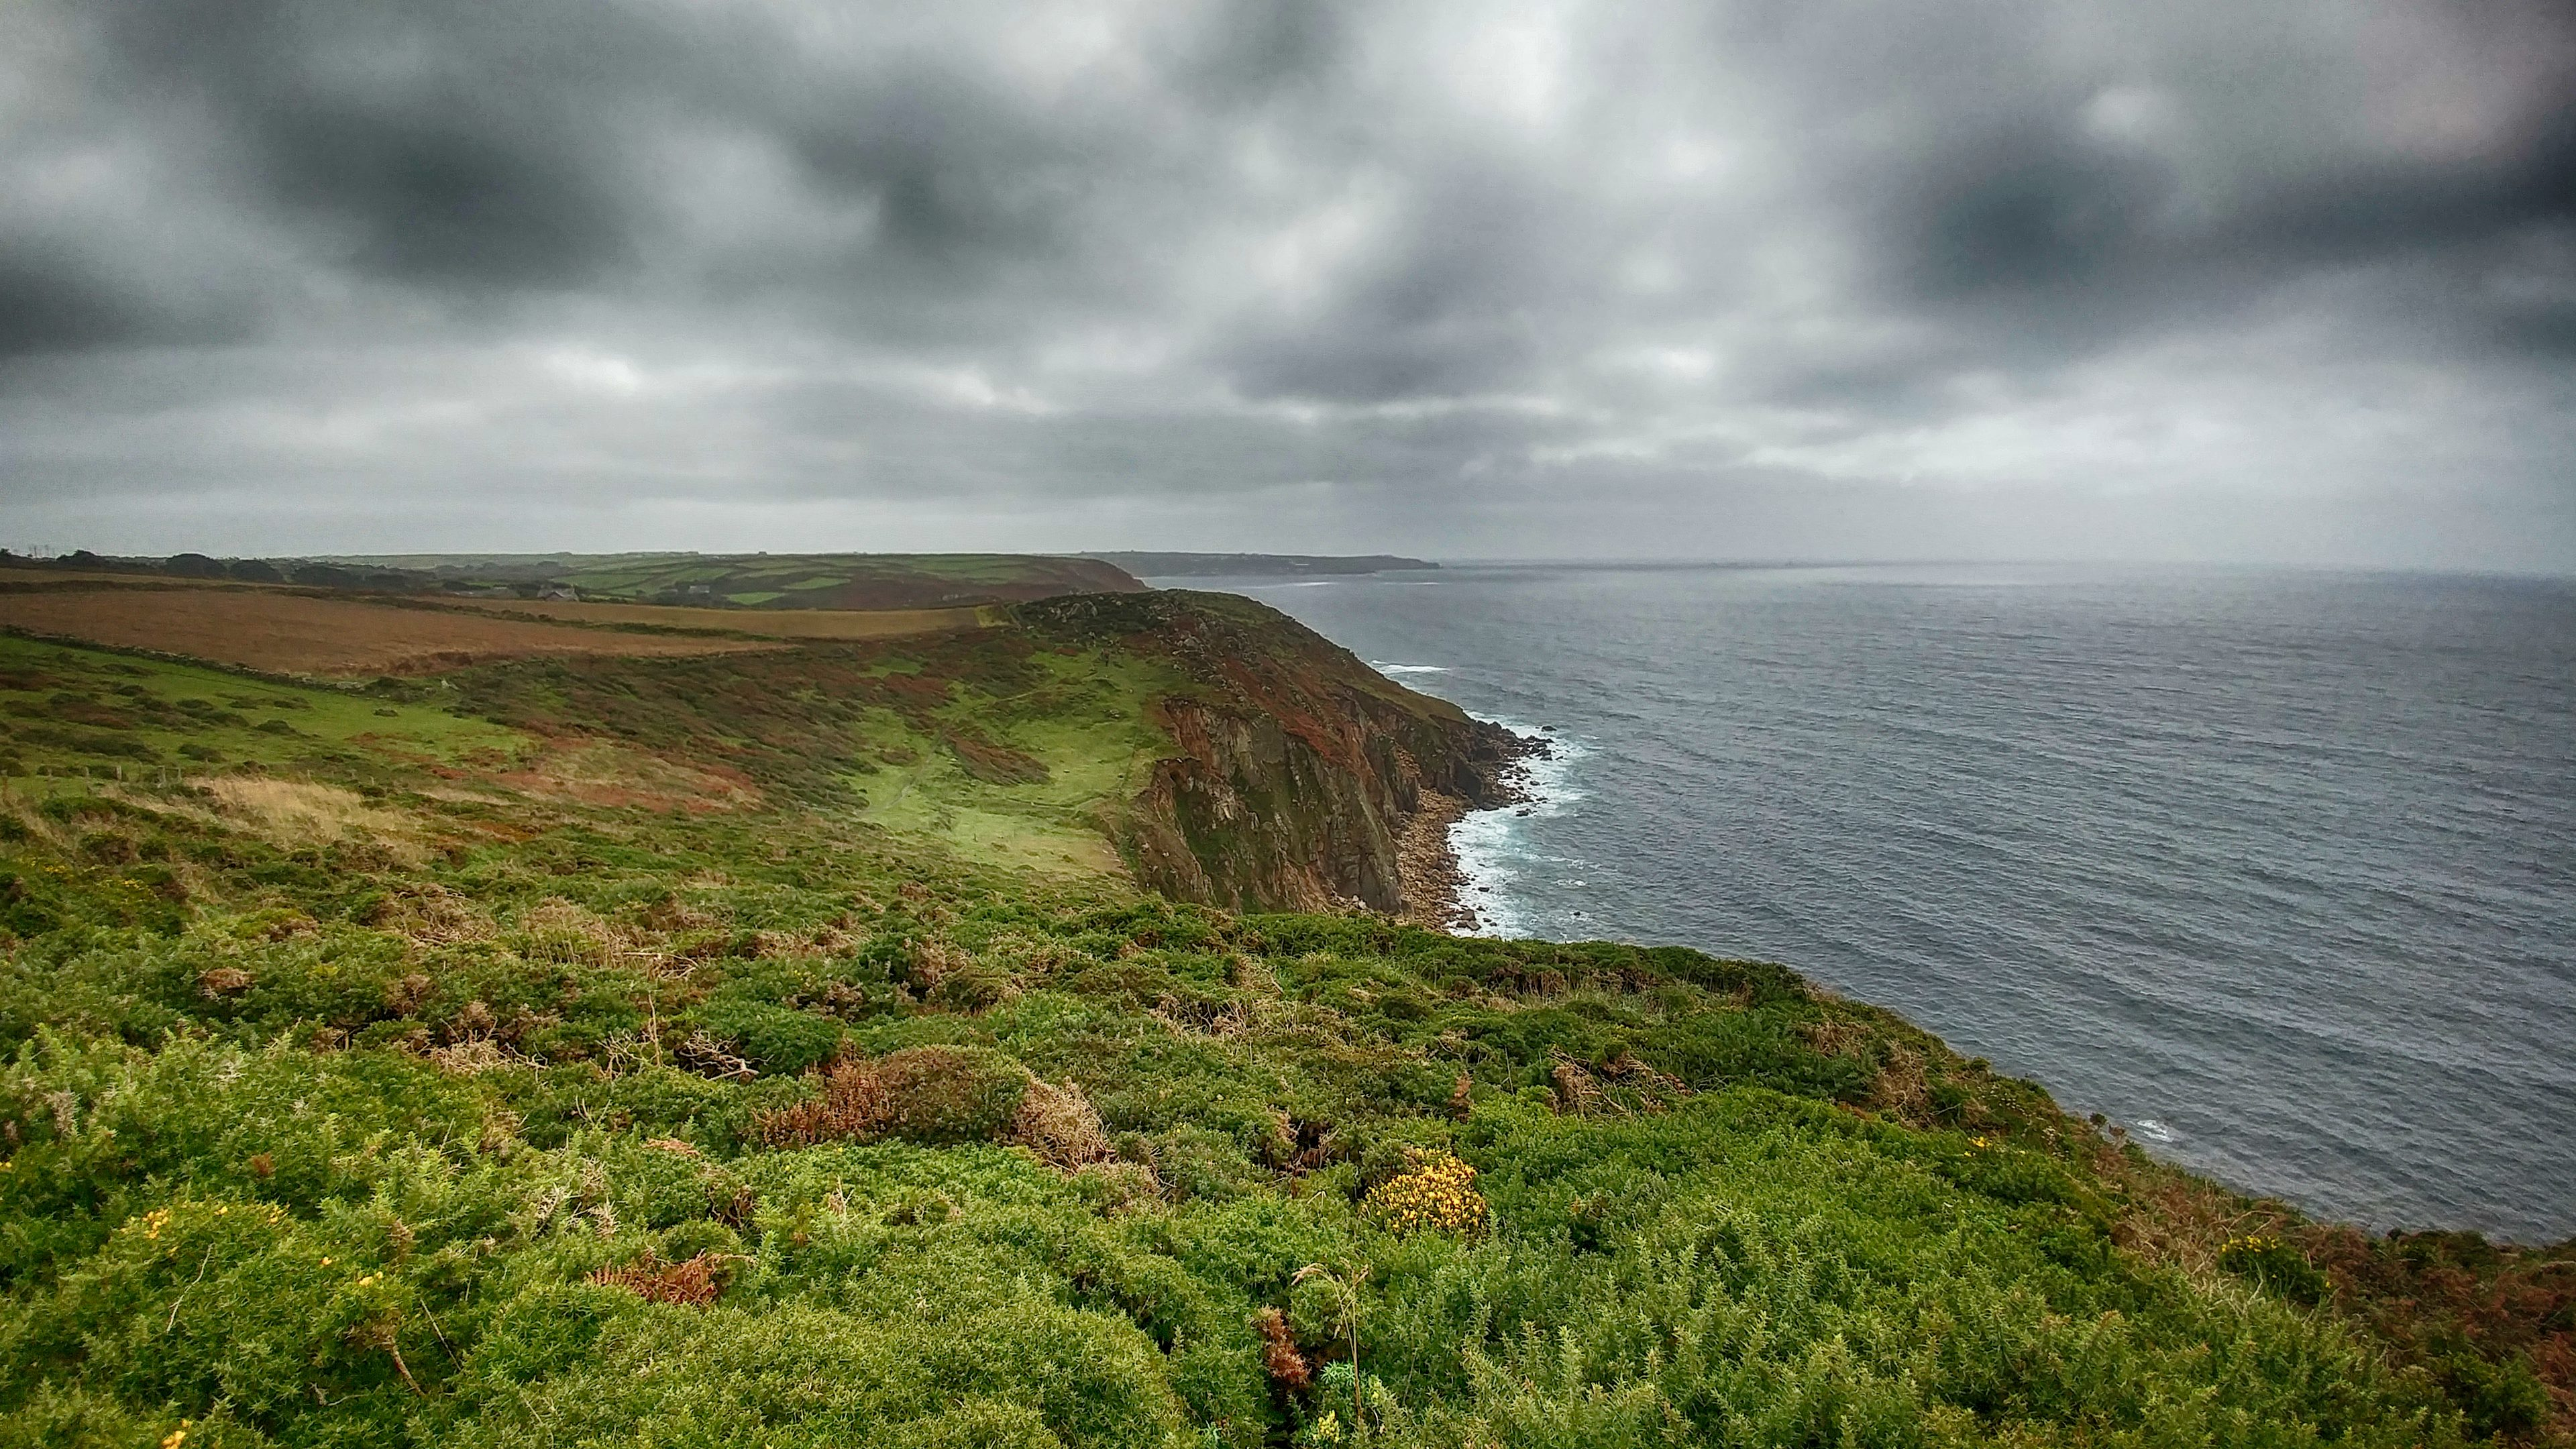 Looking back towards Sennen from near Porth Nanven